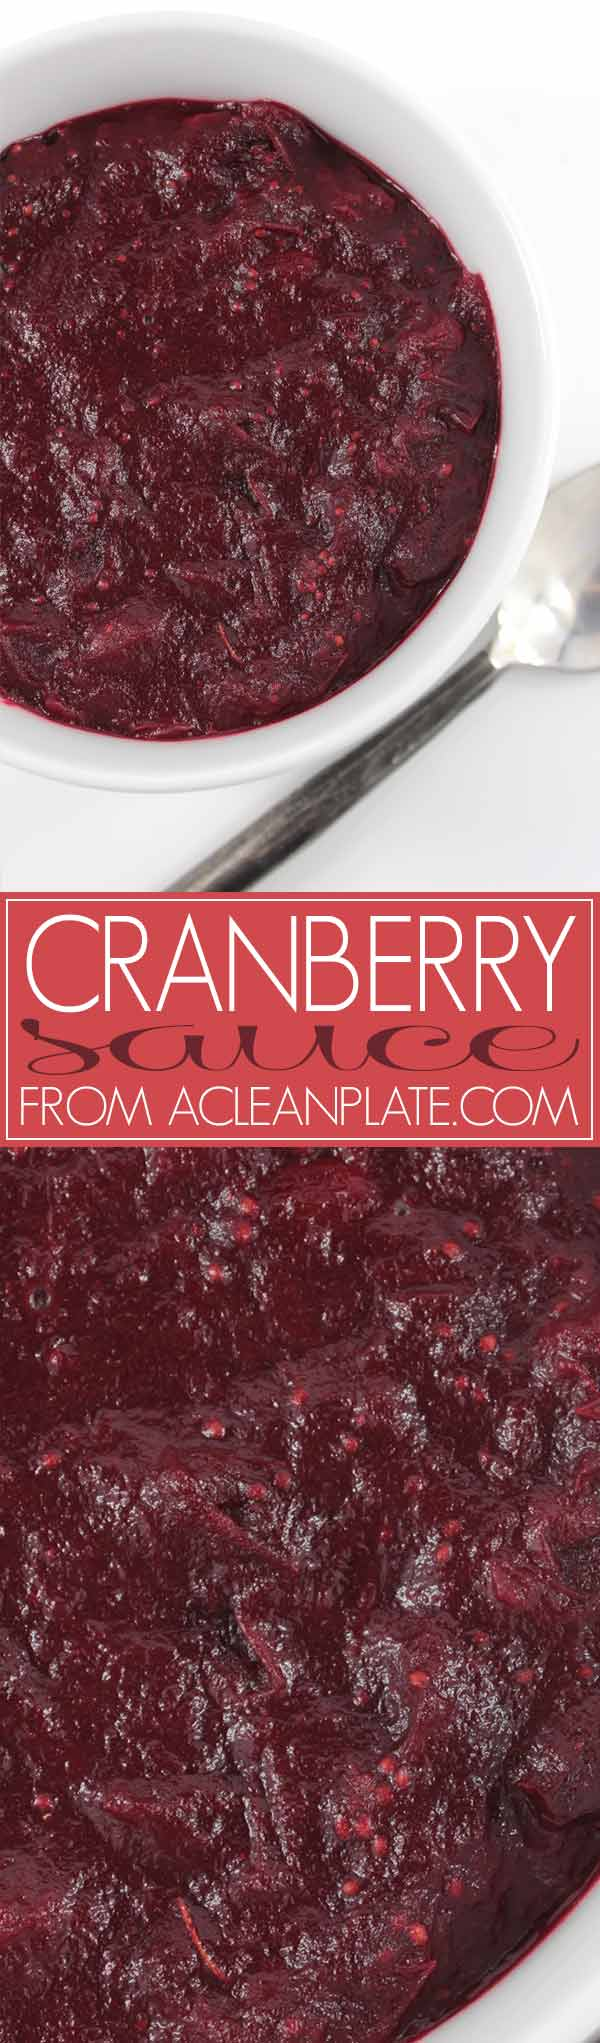 Cranberry Sauce recipe from ACleanPlate.com